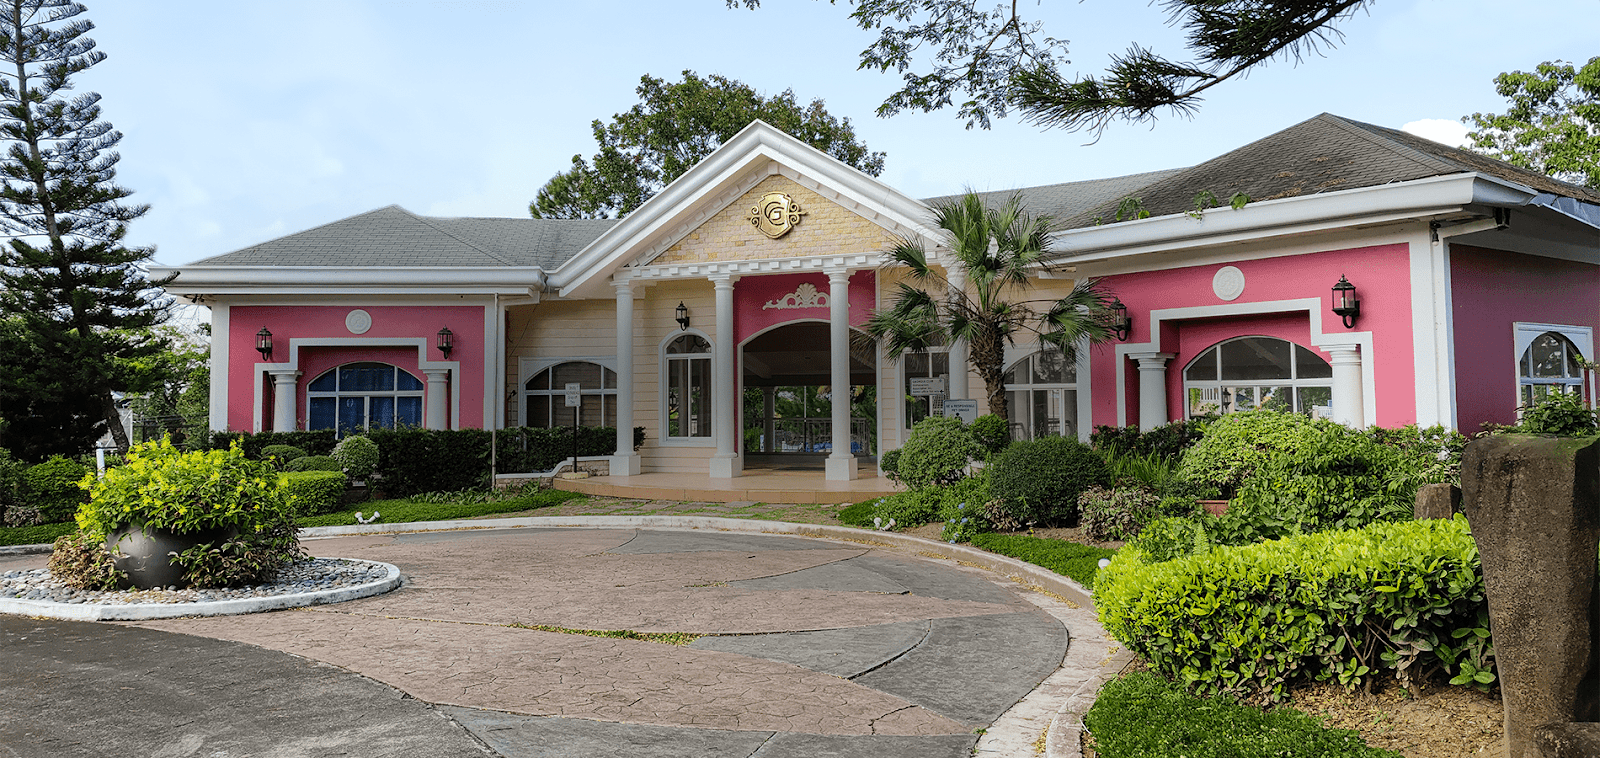 Pink Southern American style club house by a paved rotunda with healthy green pine trees, palm trees, and bushes | Luxury Homes by Brittany Corporation